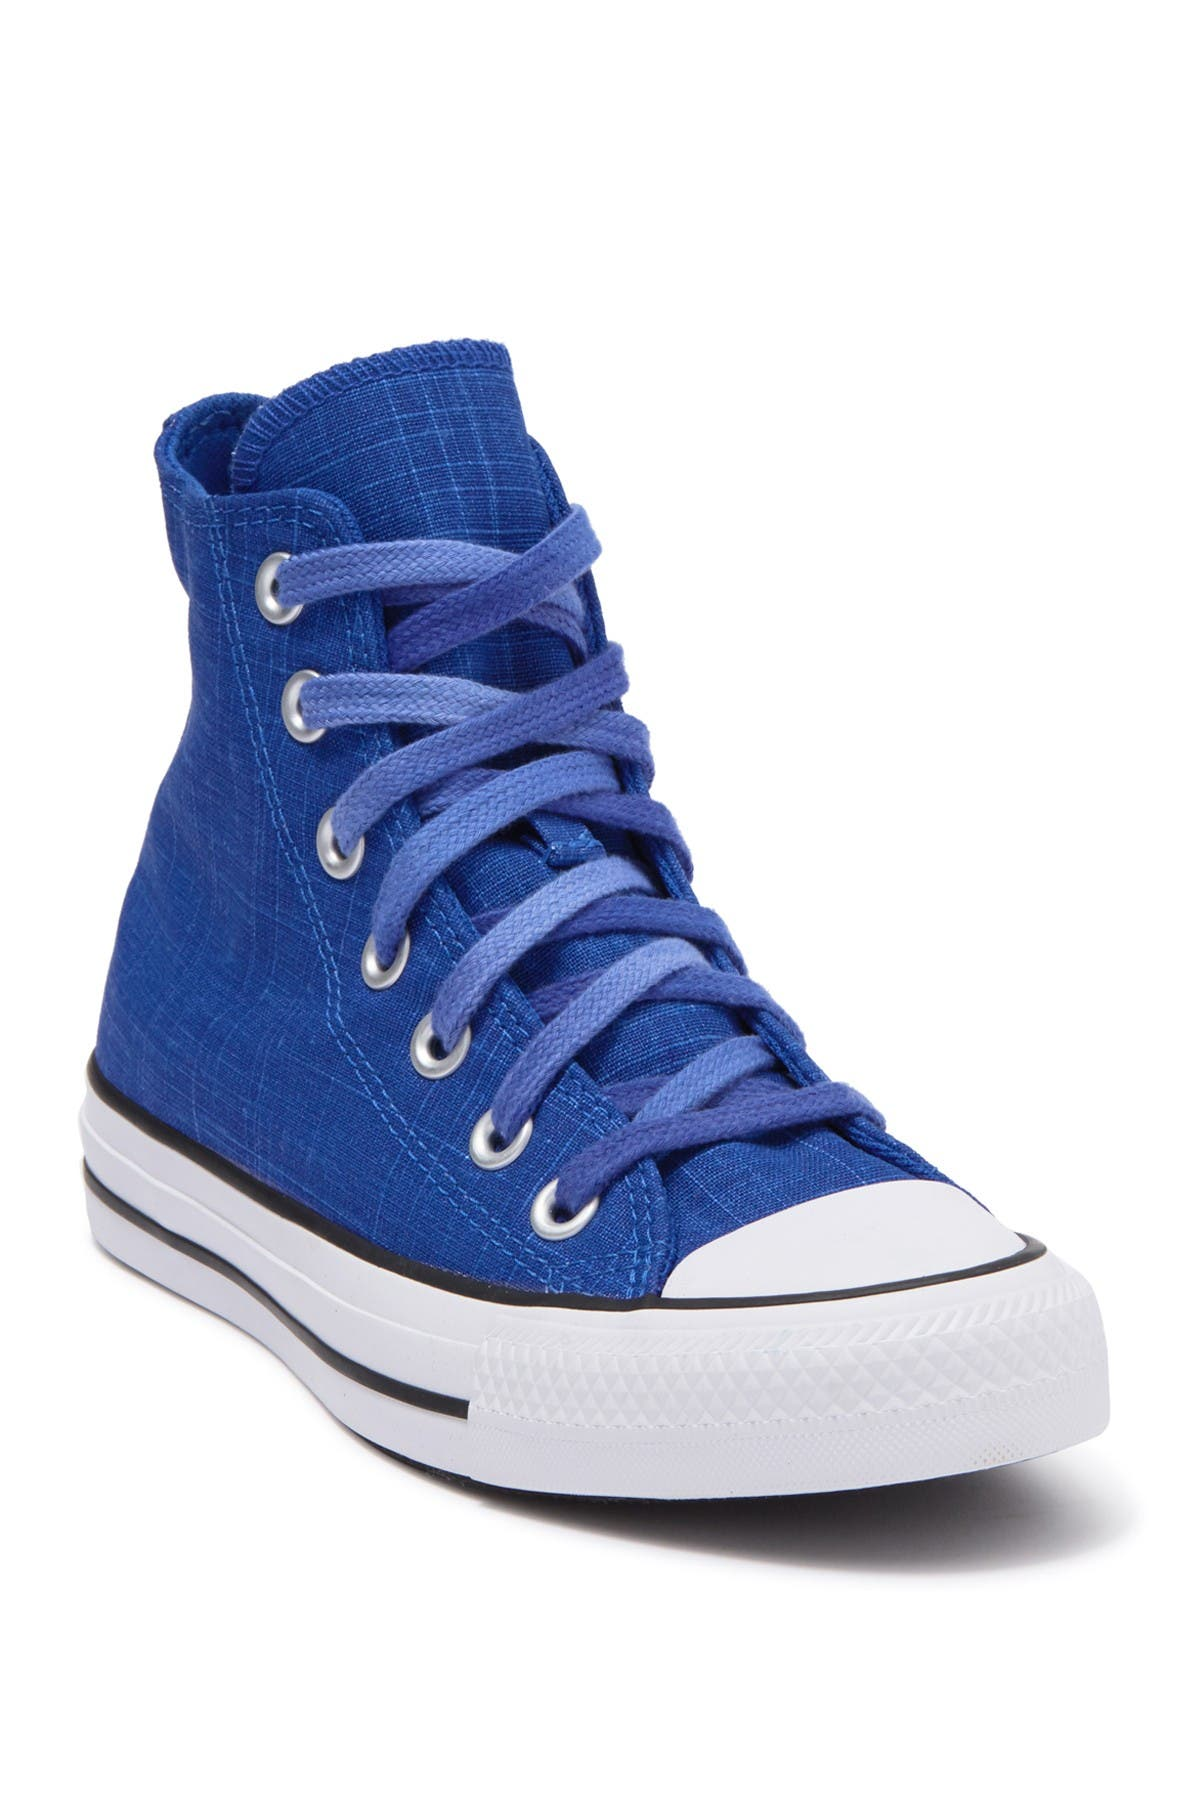 Image of Converse Chuck Taylor All Star High Game Sneaker